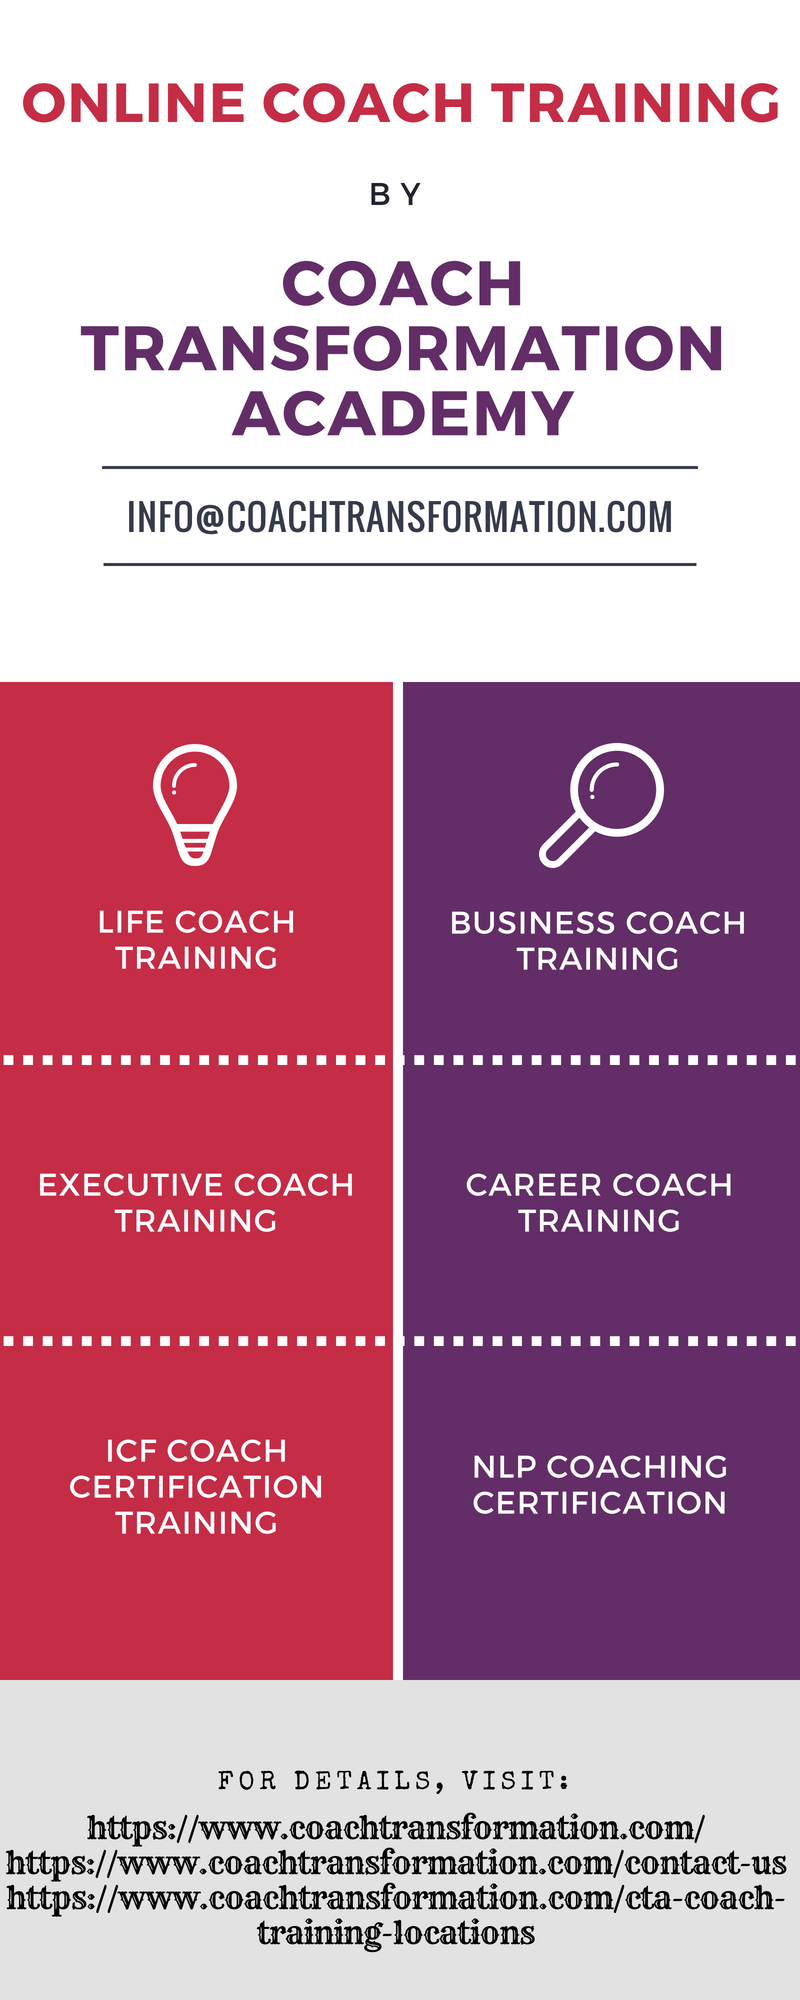 Coach Transformation Academy Offers World Class Coach Training